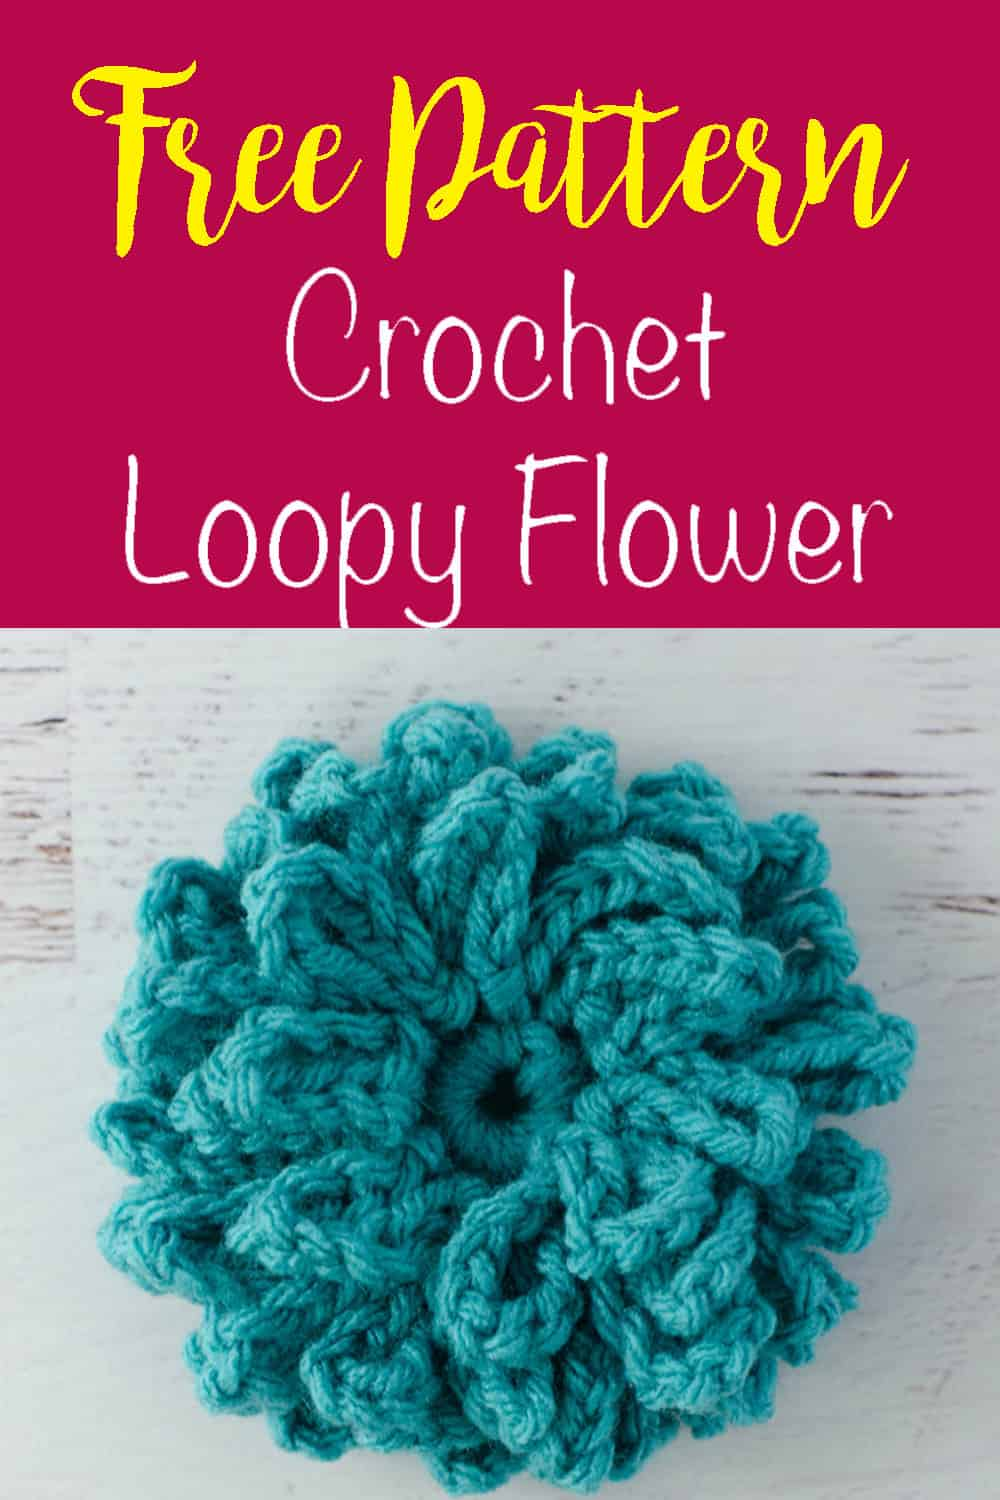 Crochet loopy flower